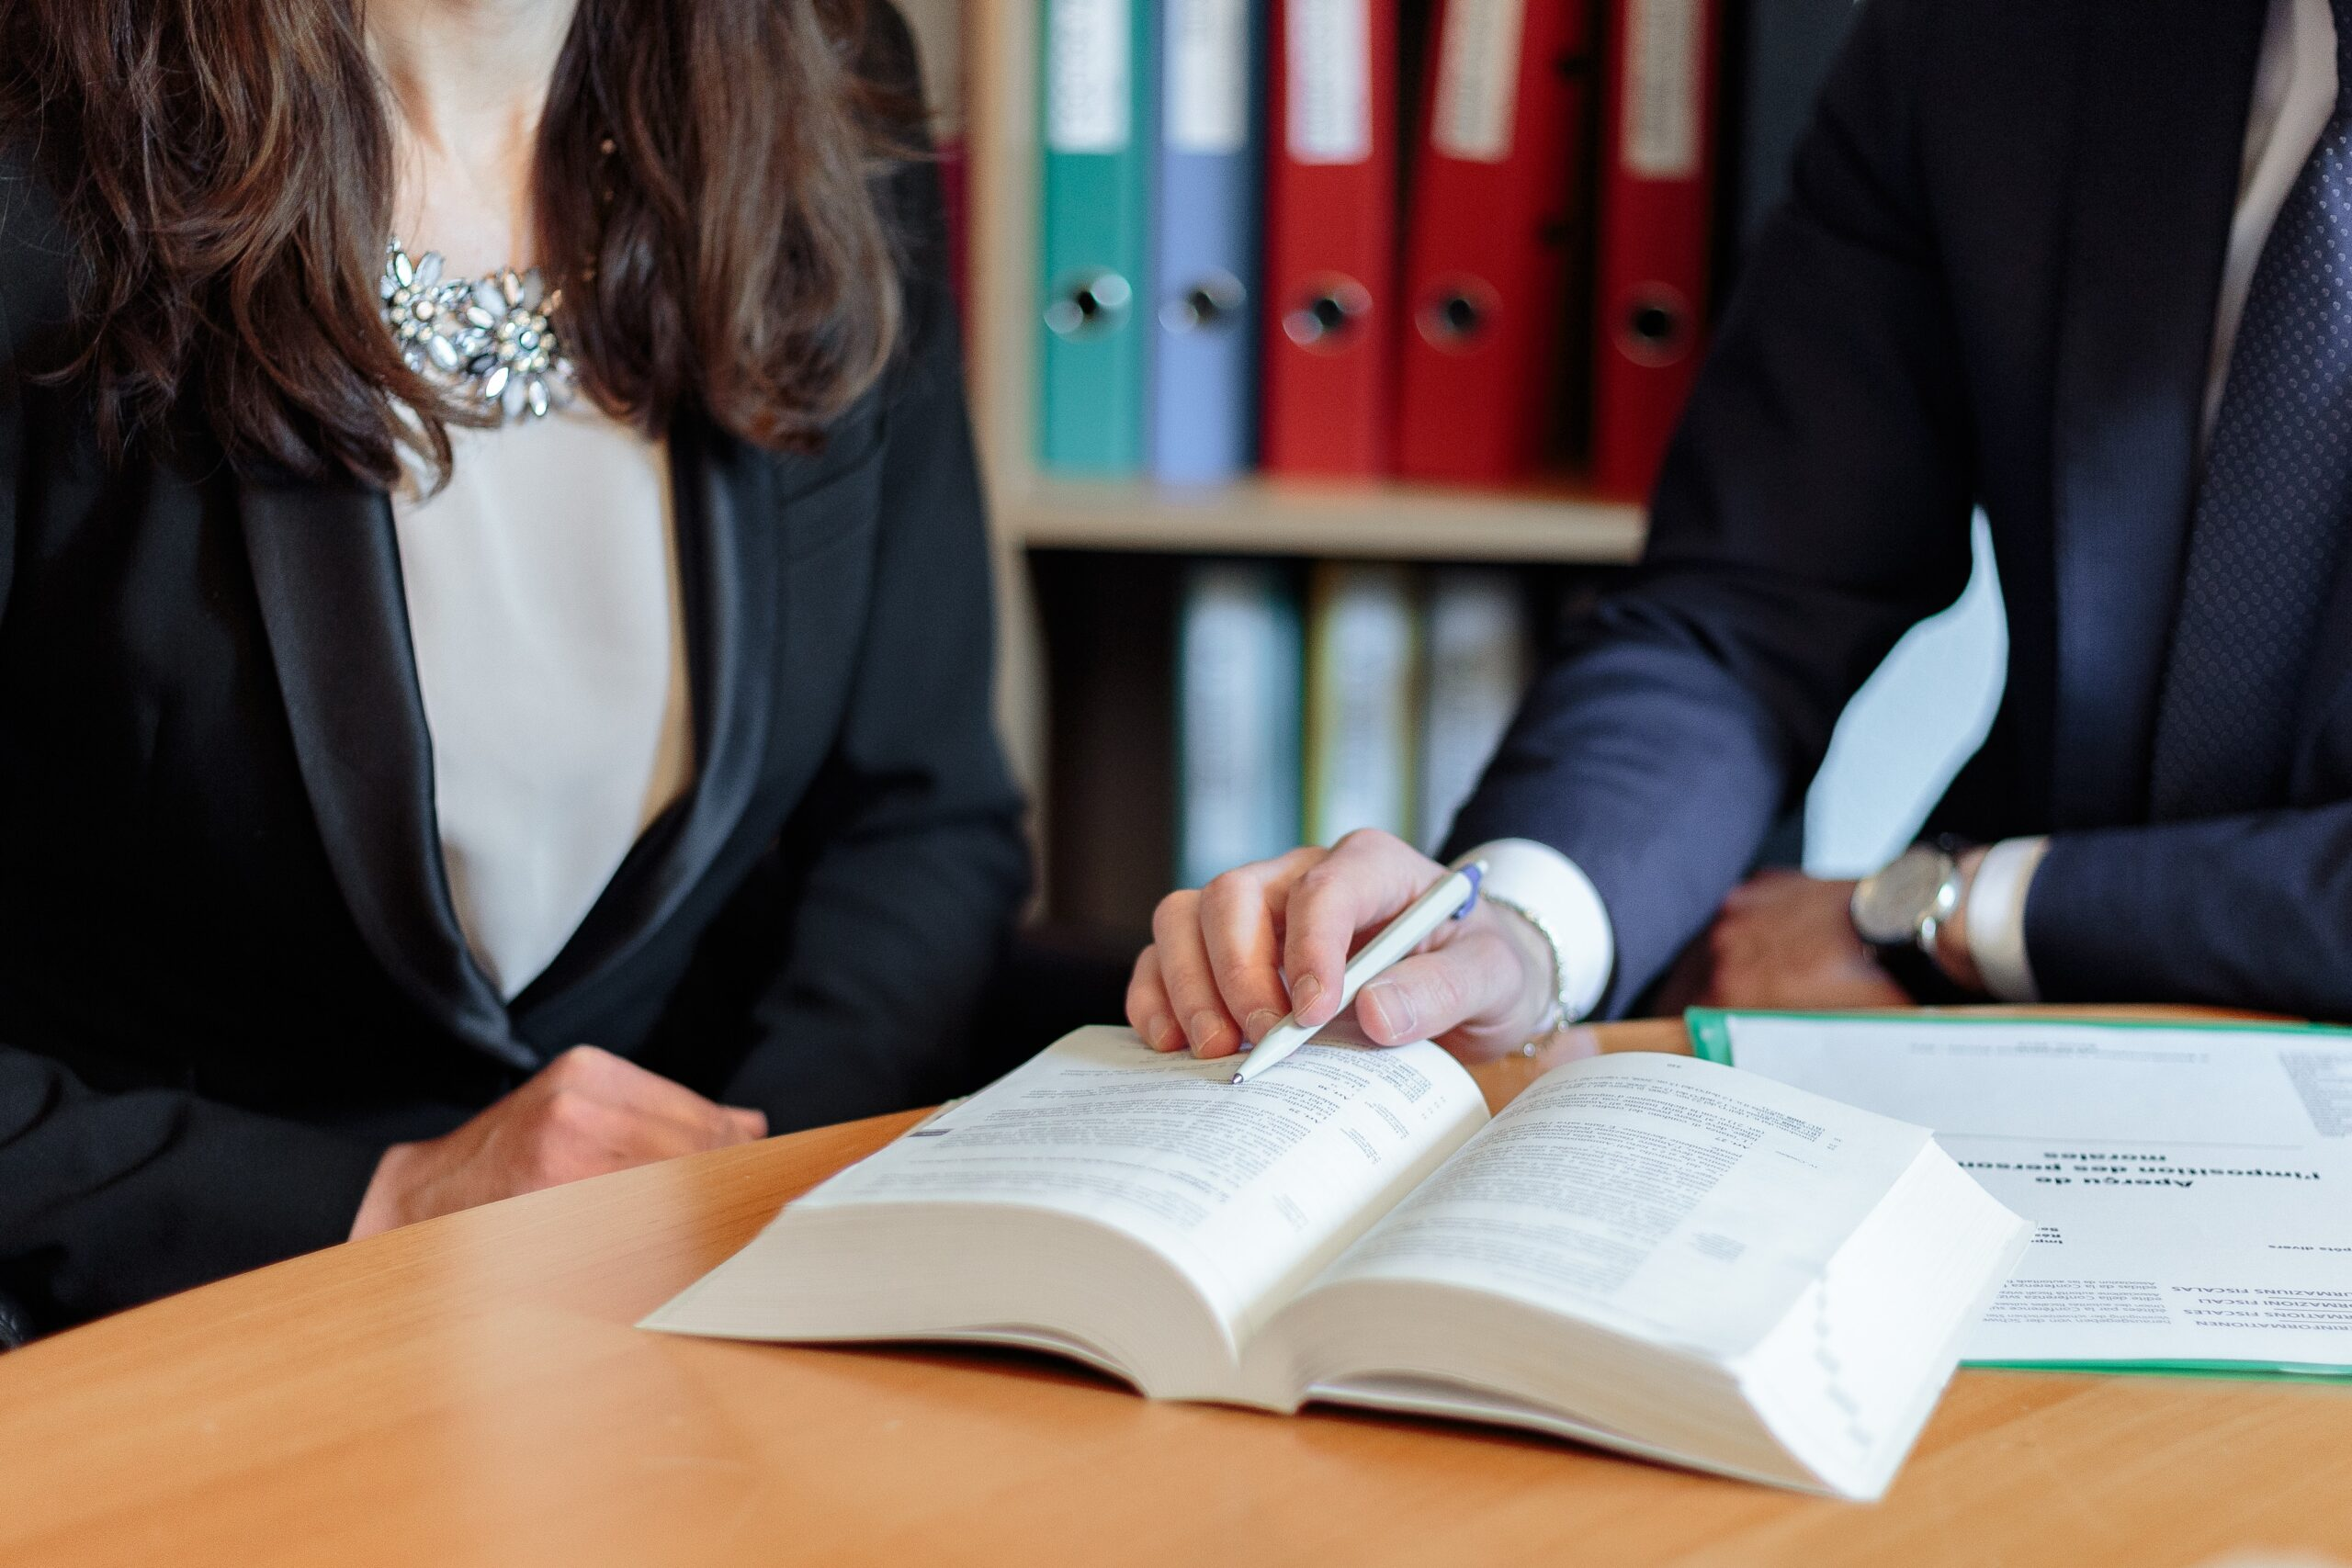 Lawyer pointing at a specific part of a book